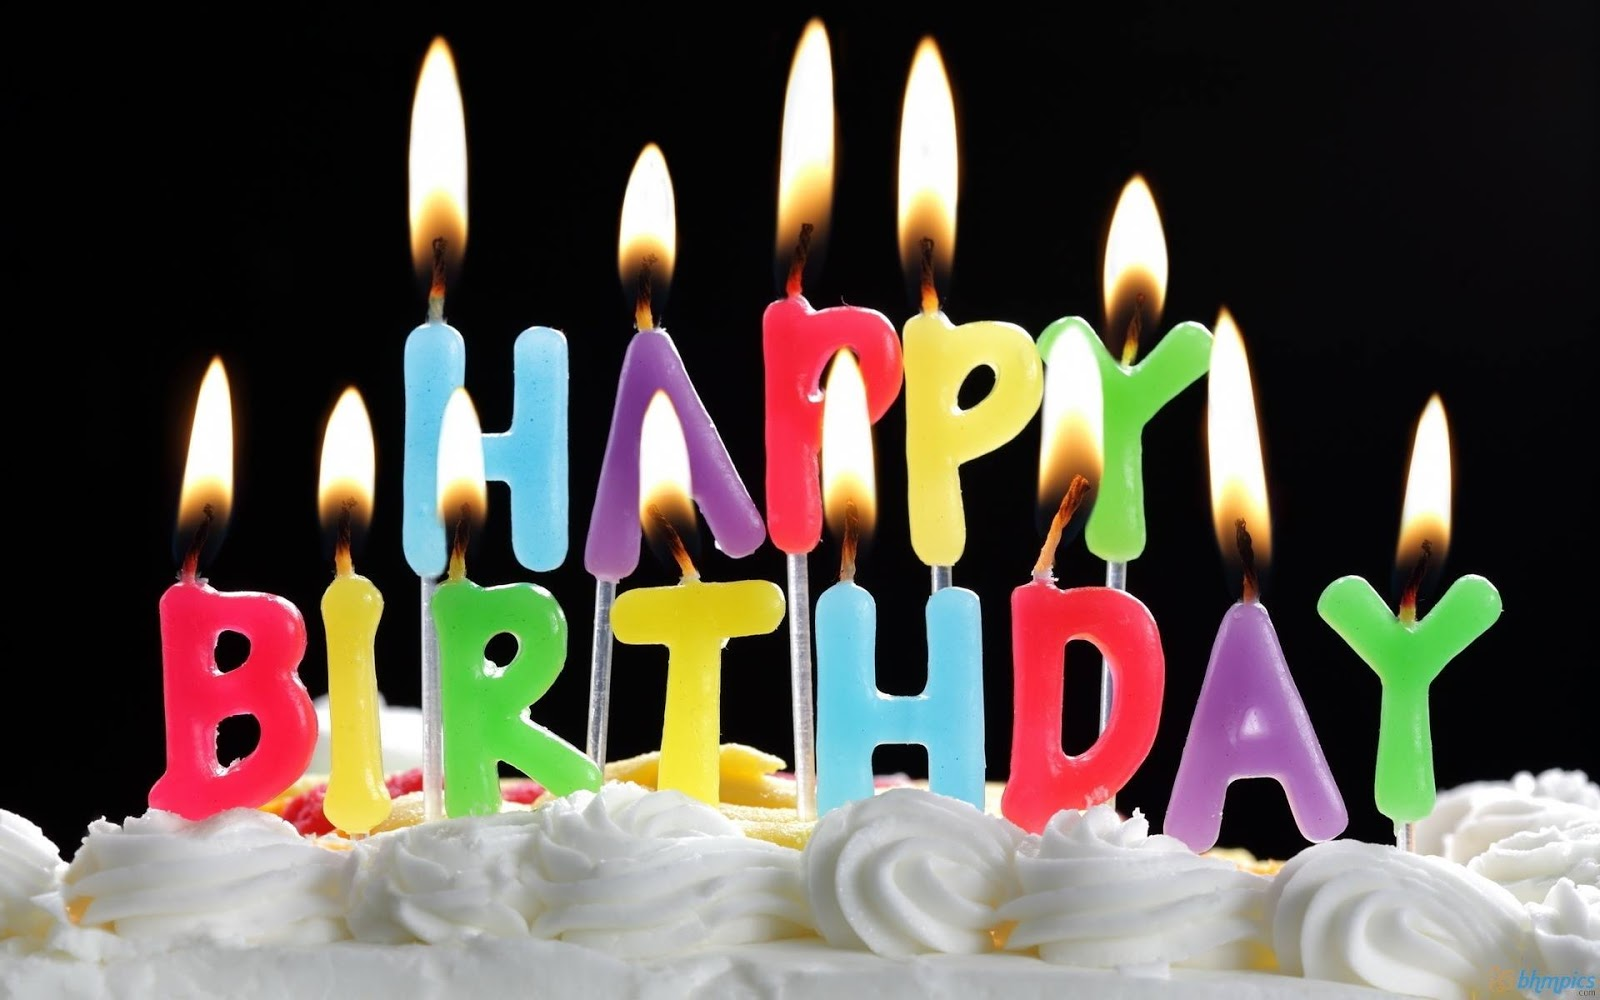 Happy Birthday: Lighted Candles